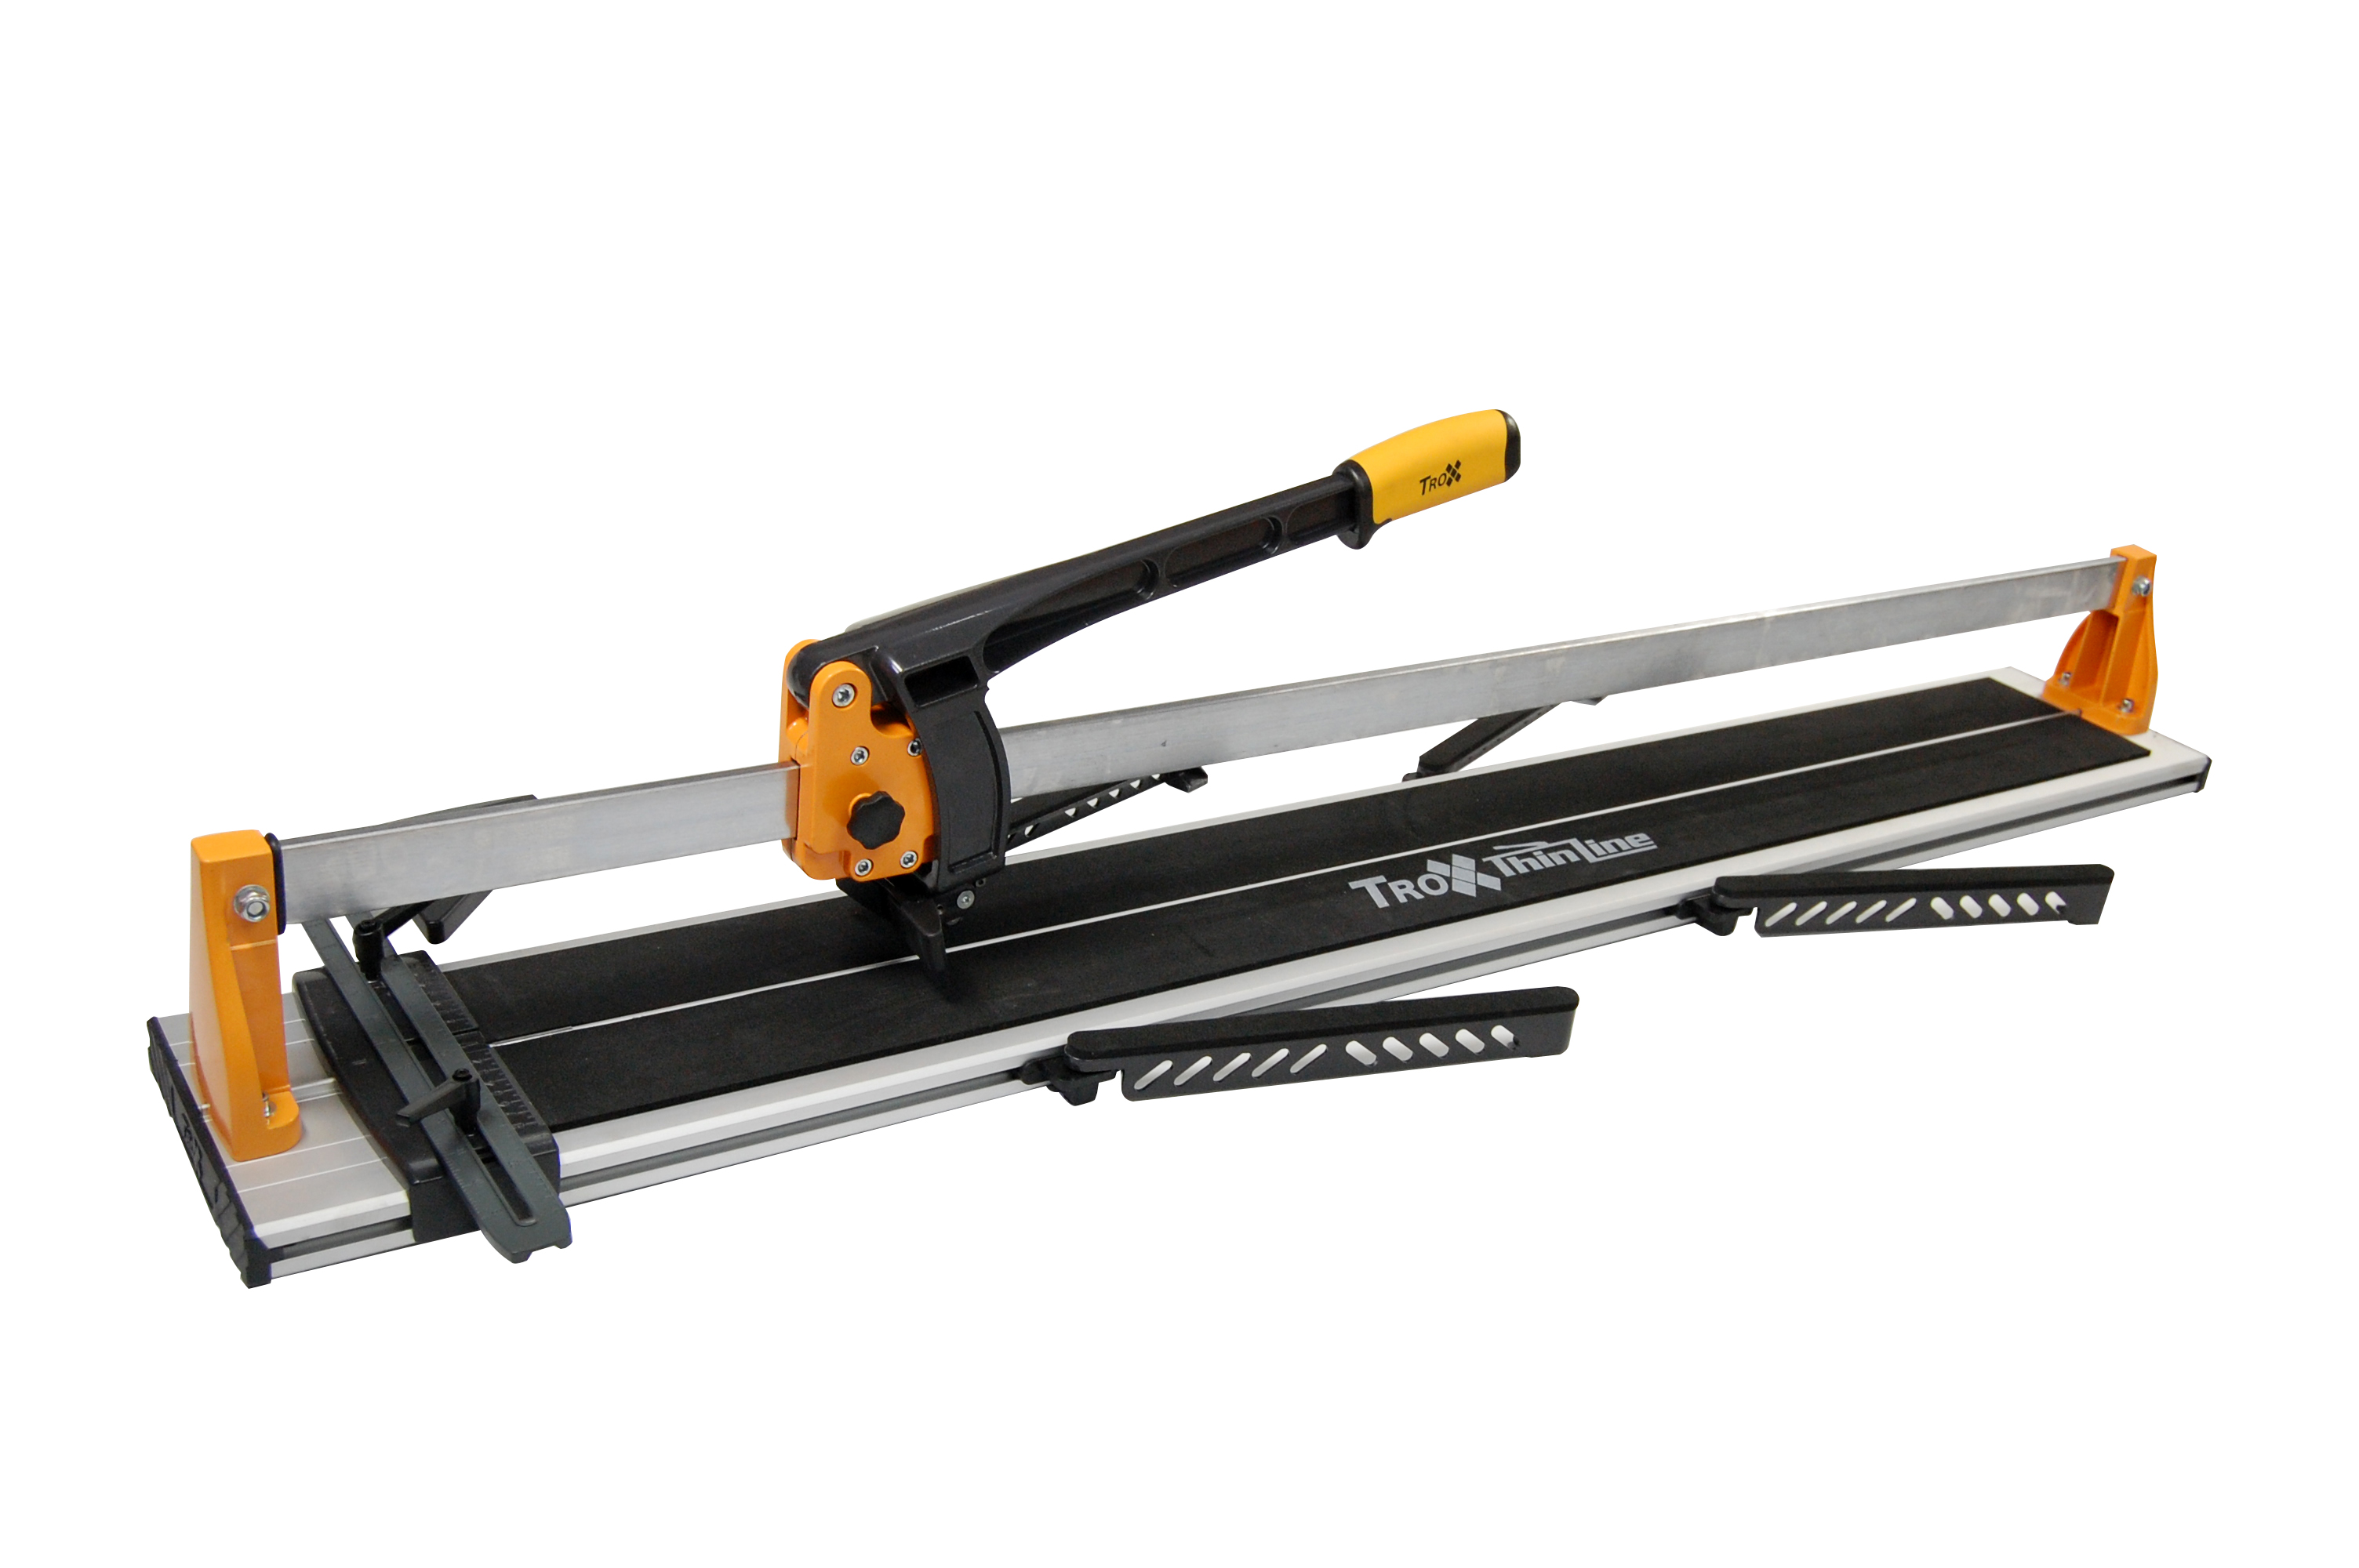 48 troxell thinline tile cutter